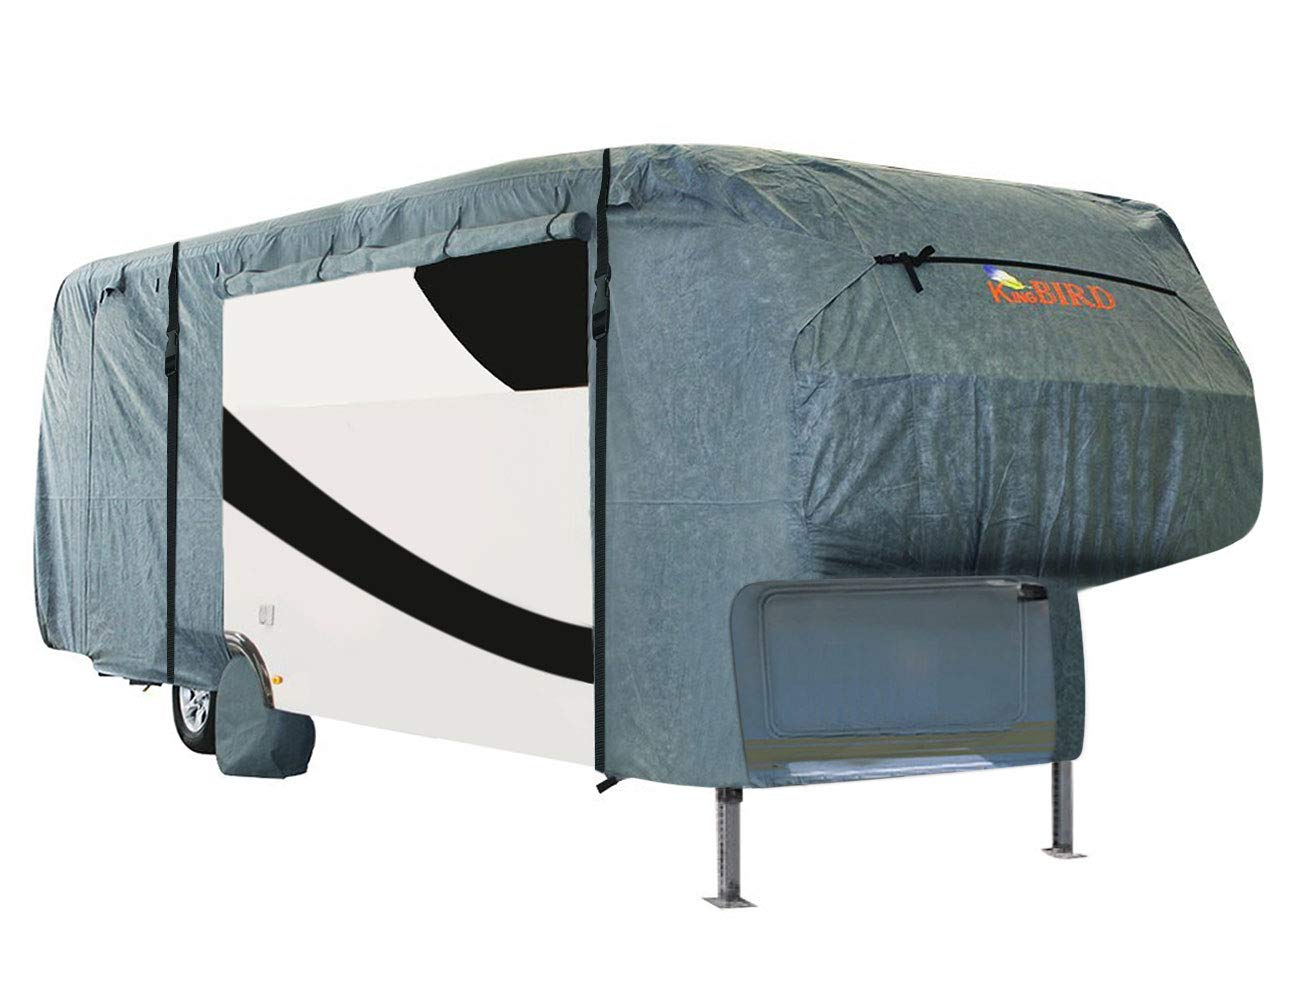 26-29New Breathable Water-Repellent Rip-Stop Anti-UV with Storage Bag KING BIRD Extra-Thick 4-Ply Top Panel /& 4Pcs Tire Covers Deluxe 5th Wheel RV Cover Fits 26/'-29/' RV Cover